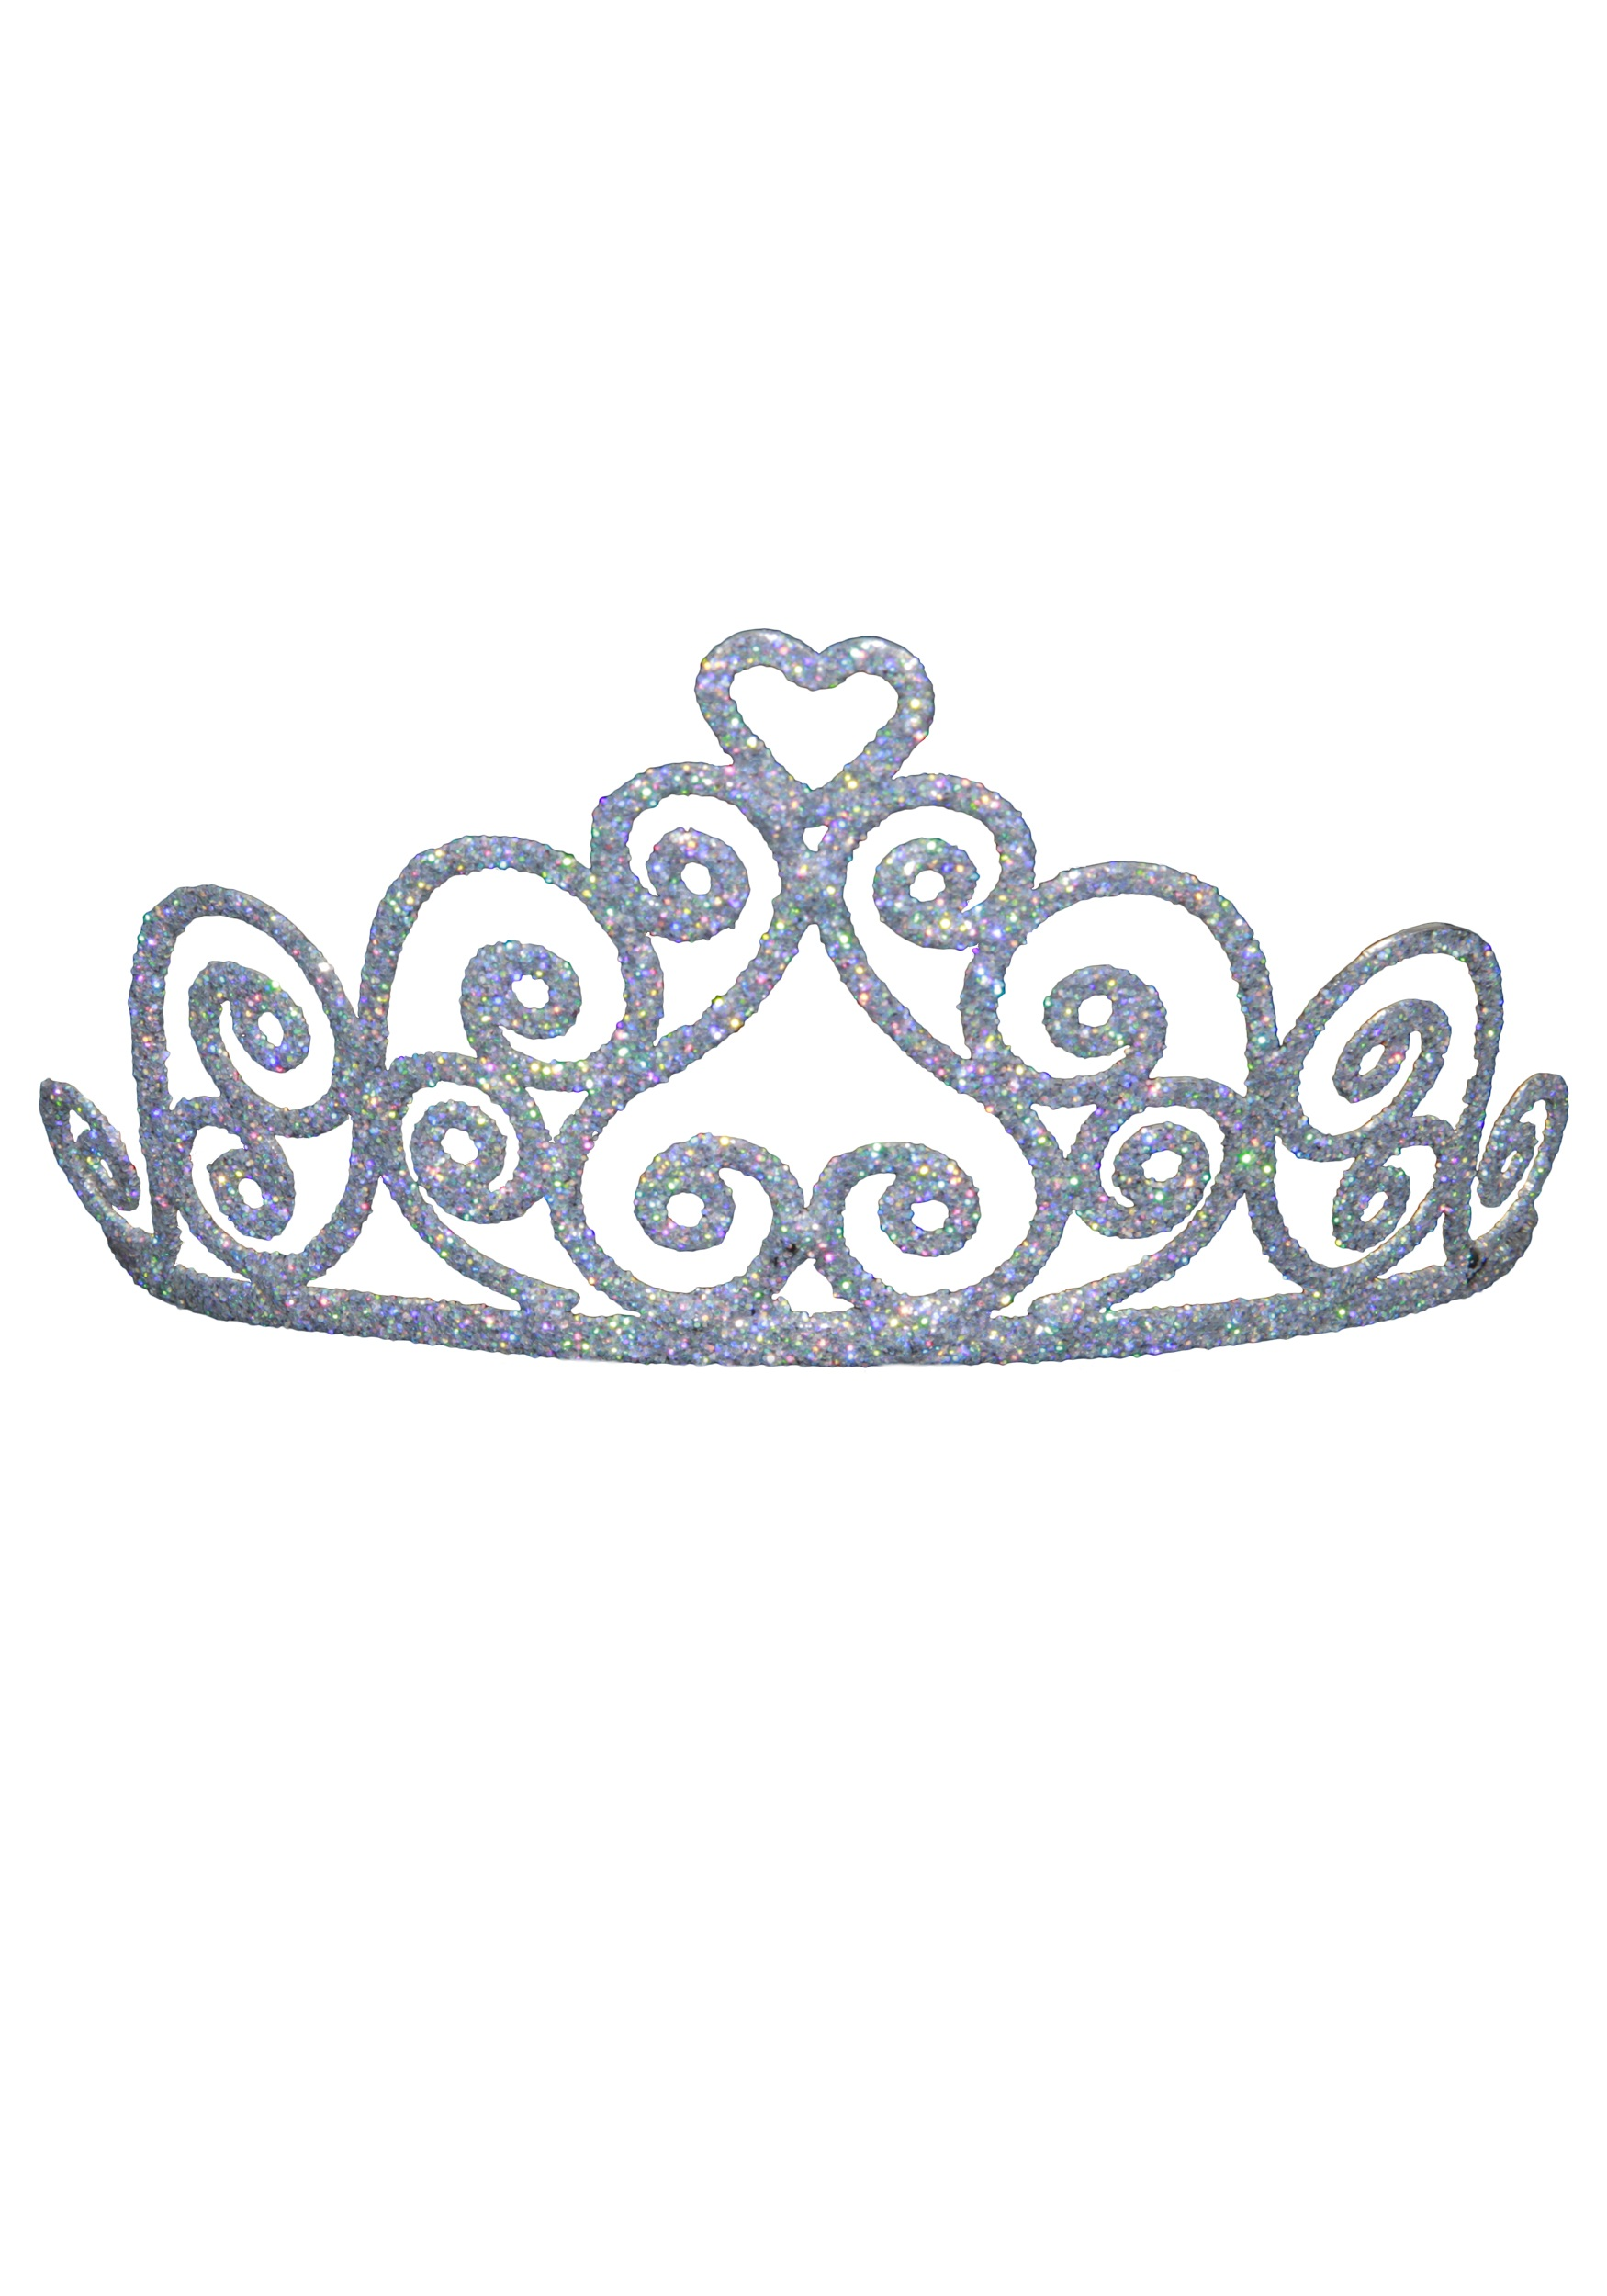 queen crown clipart tiara